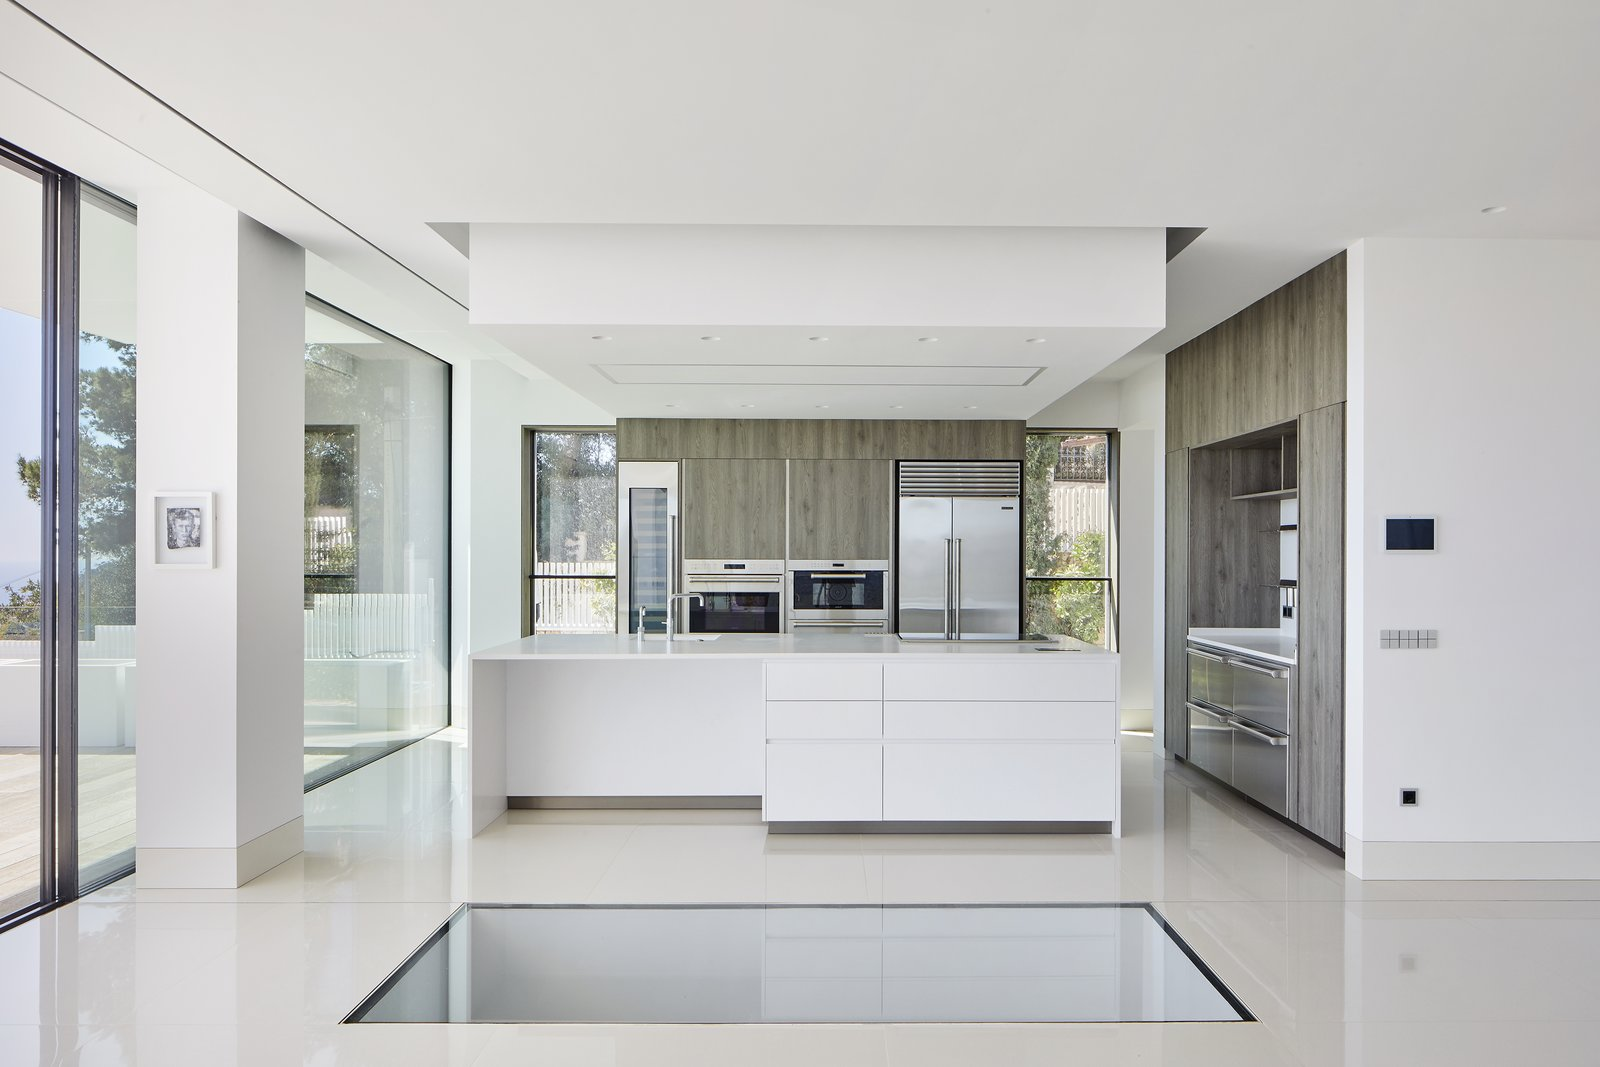 Kitchen, Wall Oven, White, Metal, Microwave, Wine Cooler, Drop In, Laminate, Ceiling, Granite, Range, Range Hood, Dishwasher, Ice Maker, Table, Beverage Center, Cooktops, Wood, Refrigerator, and Porcelain Tile Kitchen.  Kitchen Range Hood Ceiling White Refrigerator Porcelain Tile Ice Maker Photos from 廚房